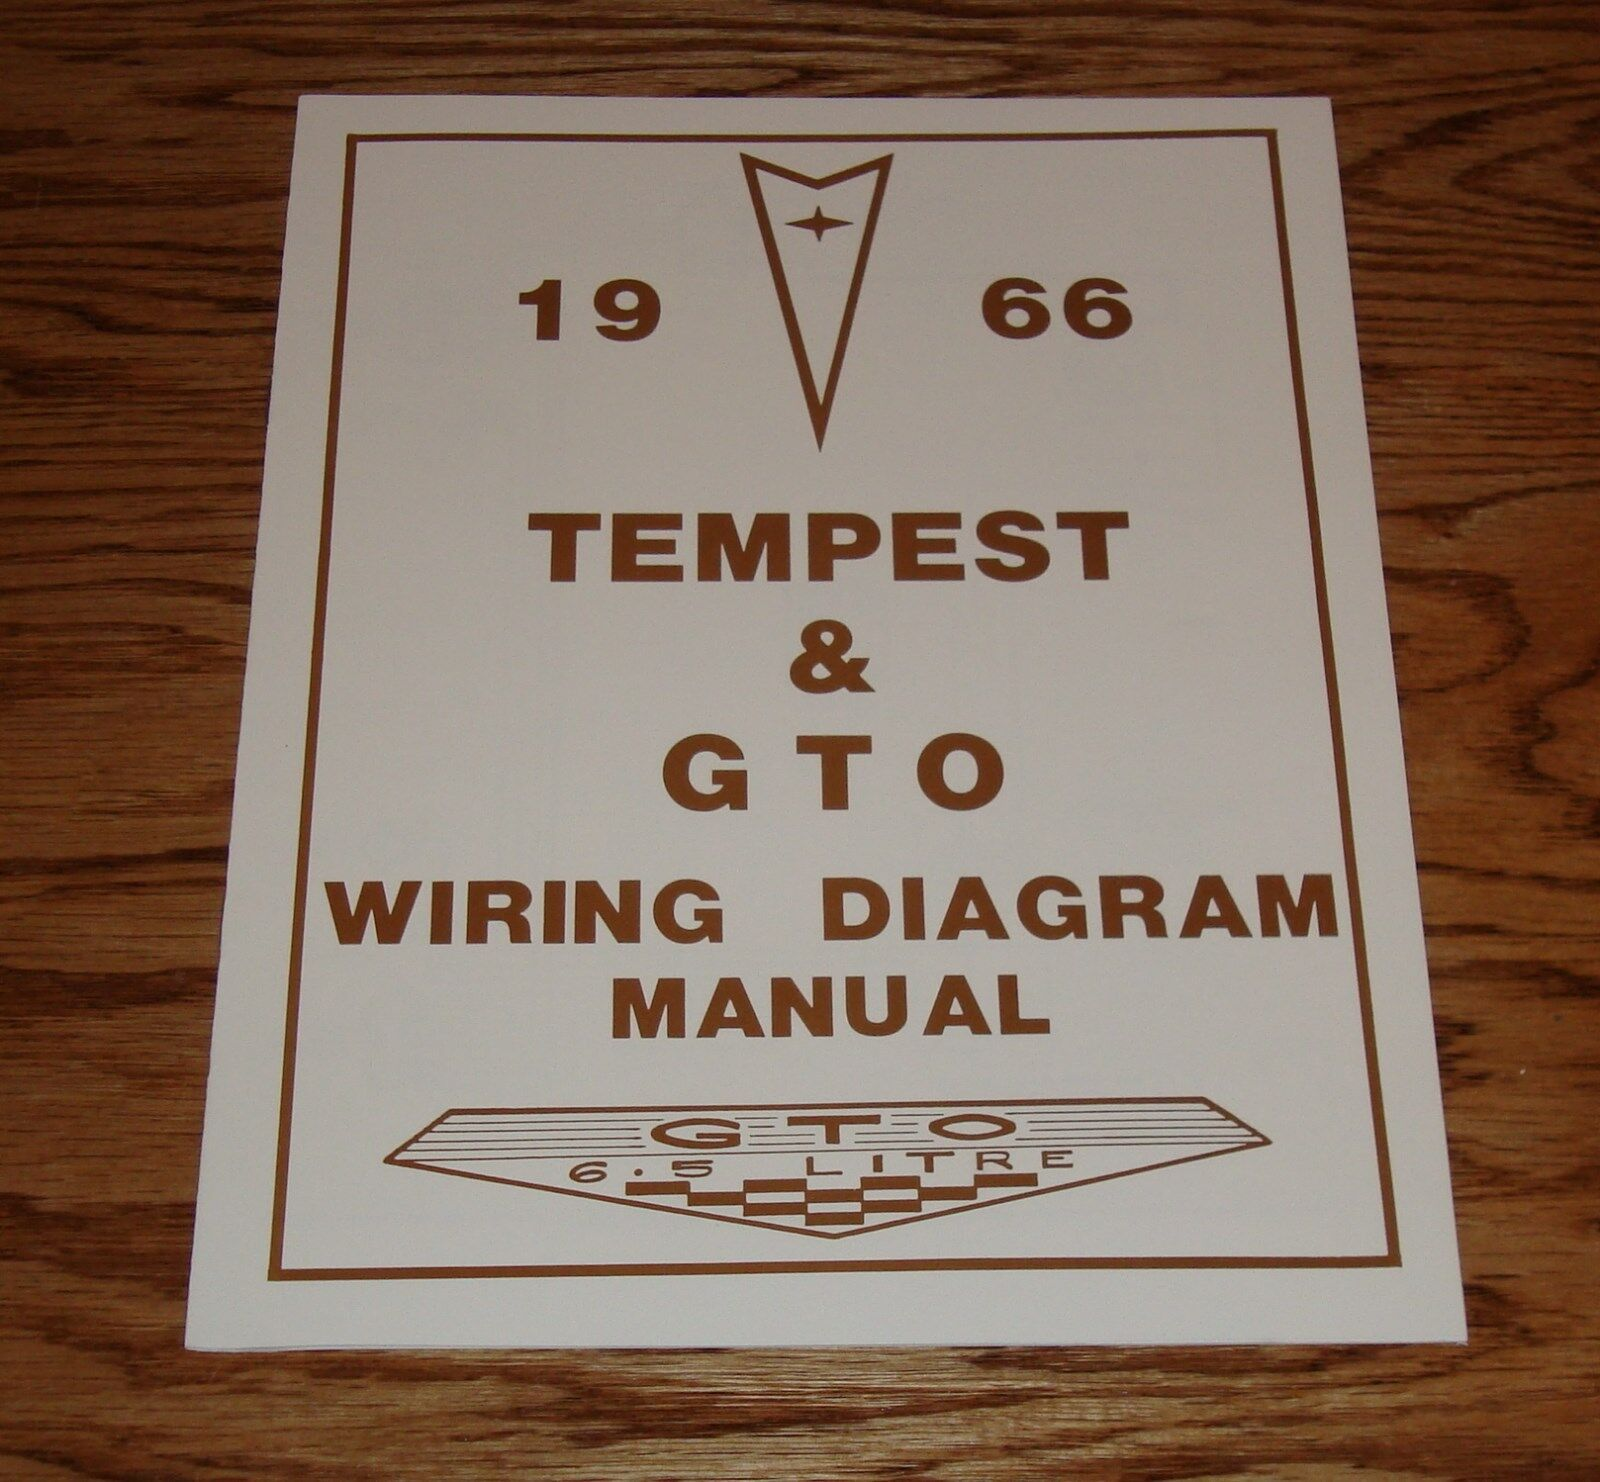 1966 Le Mans Wiring Diagram Library Schematic For 1970 Gto Pontiac Tempest Manual 66 9 00 Picclick Henry J